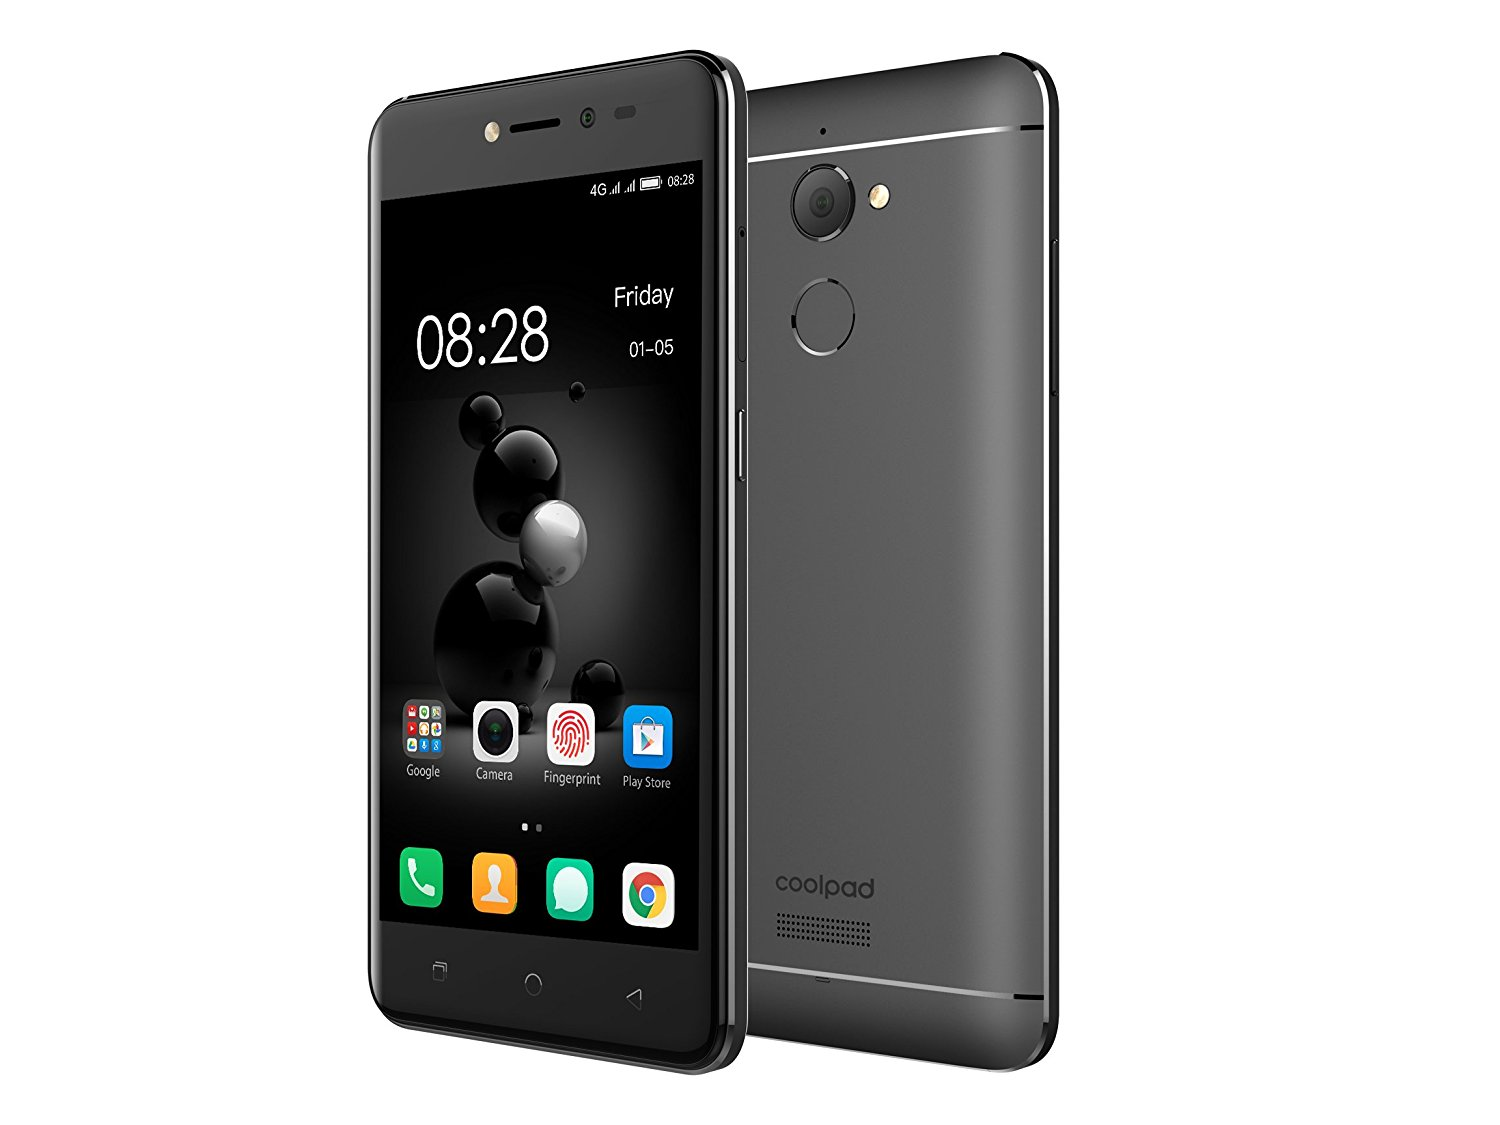 Coolpad Conjr Price in USA